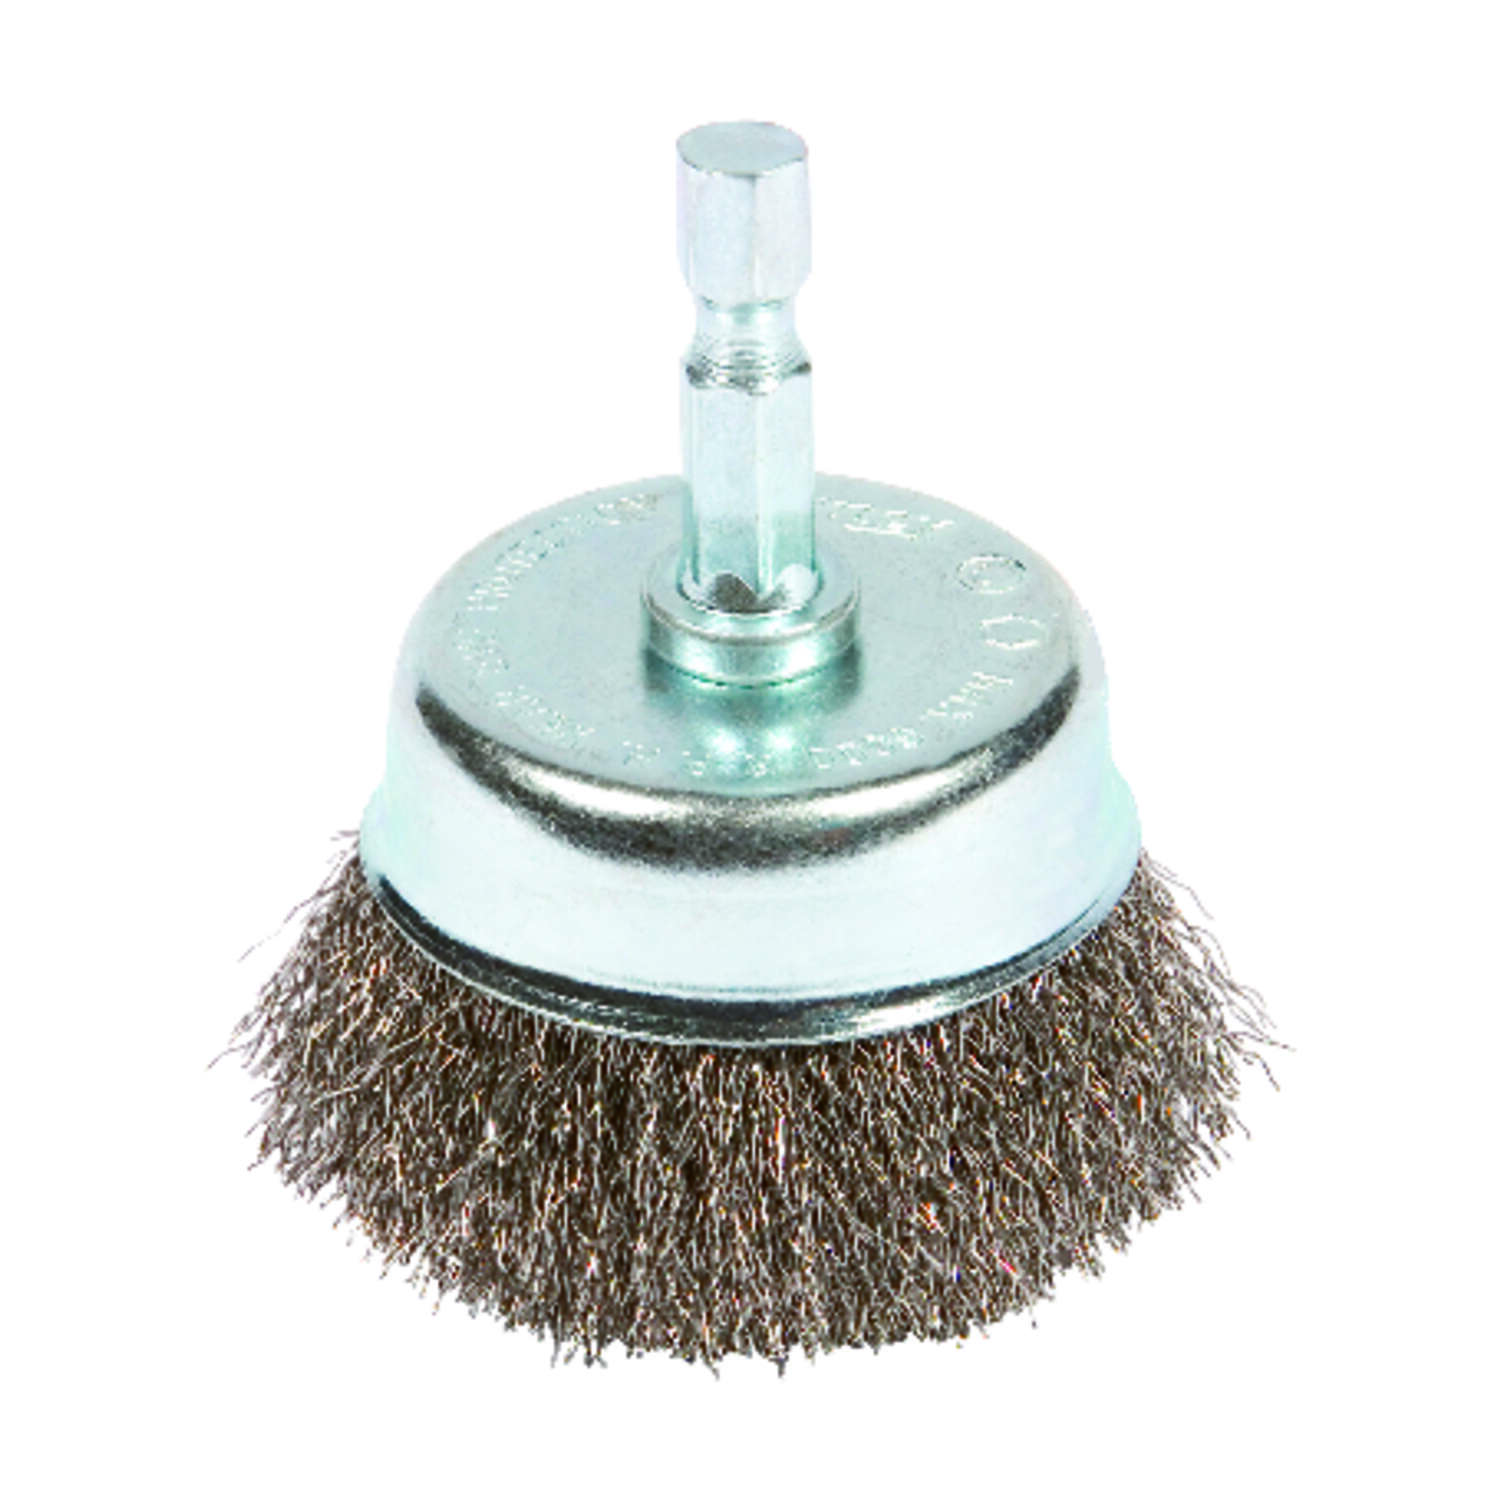 Forney 2 in. Dia. x 1/4 in. Fine Steel Crimped Wire Cup Brush 6000 rpm 1 pc.